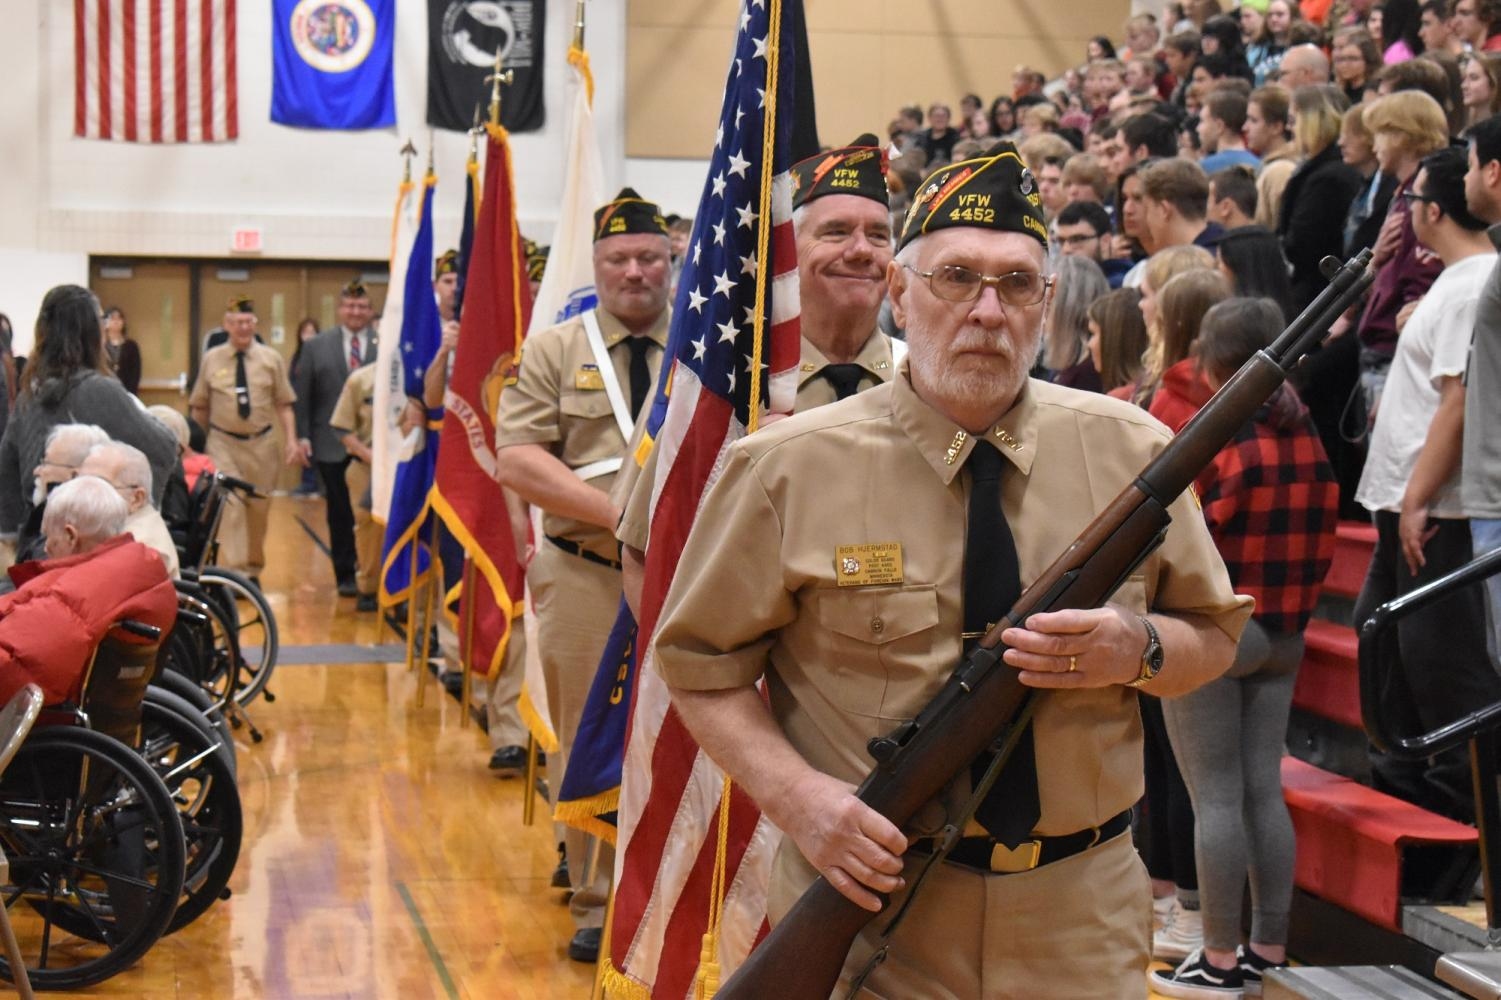 Veterans emerge from a stirring Veterans Day ceremony at Cannon Falls High School